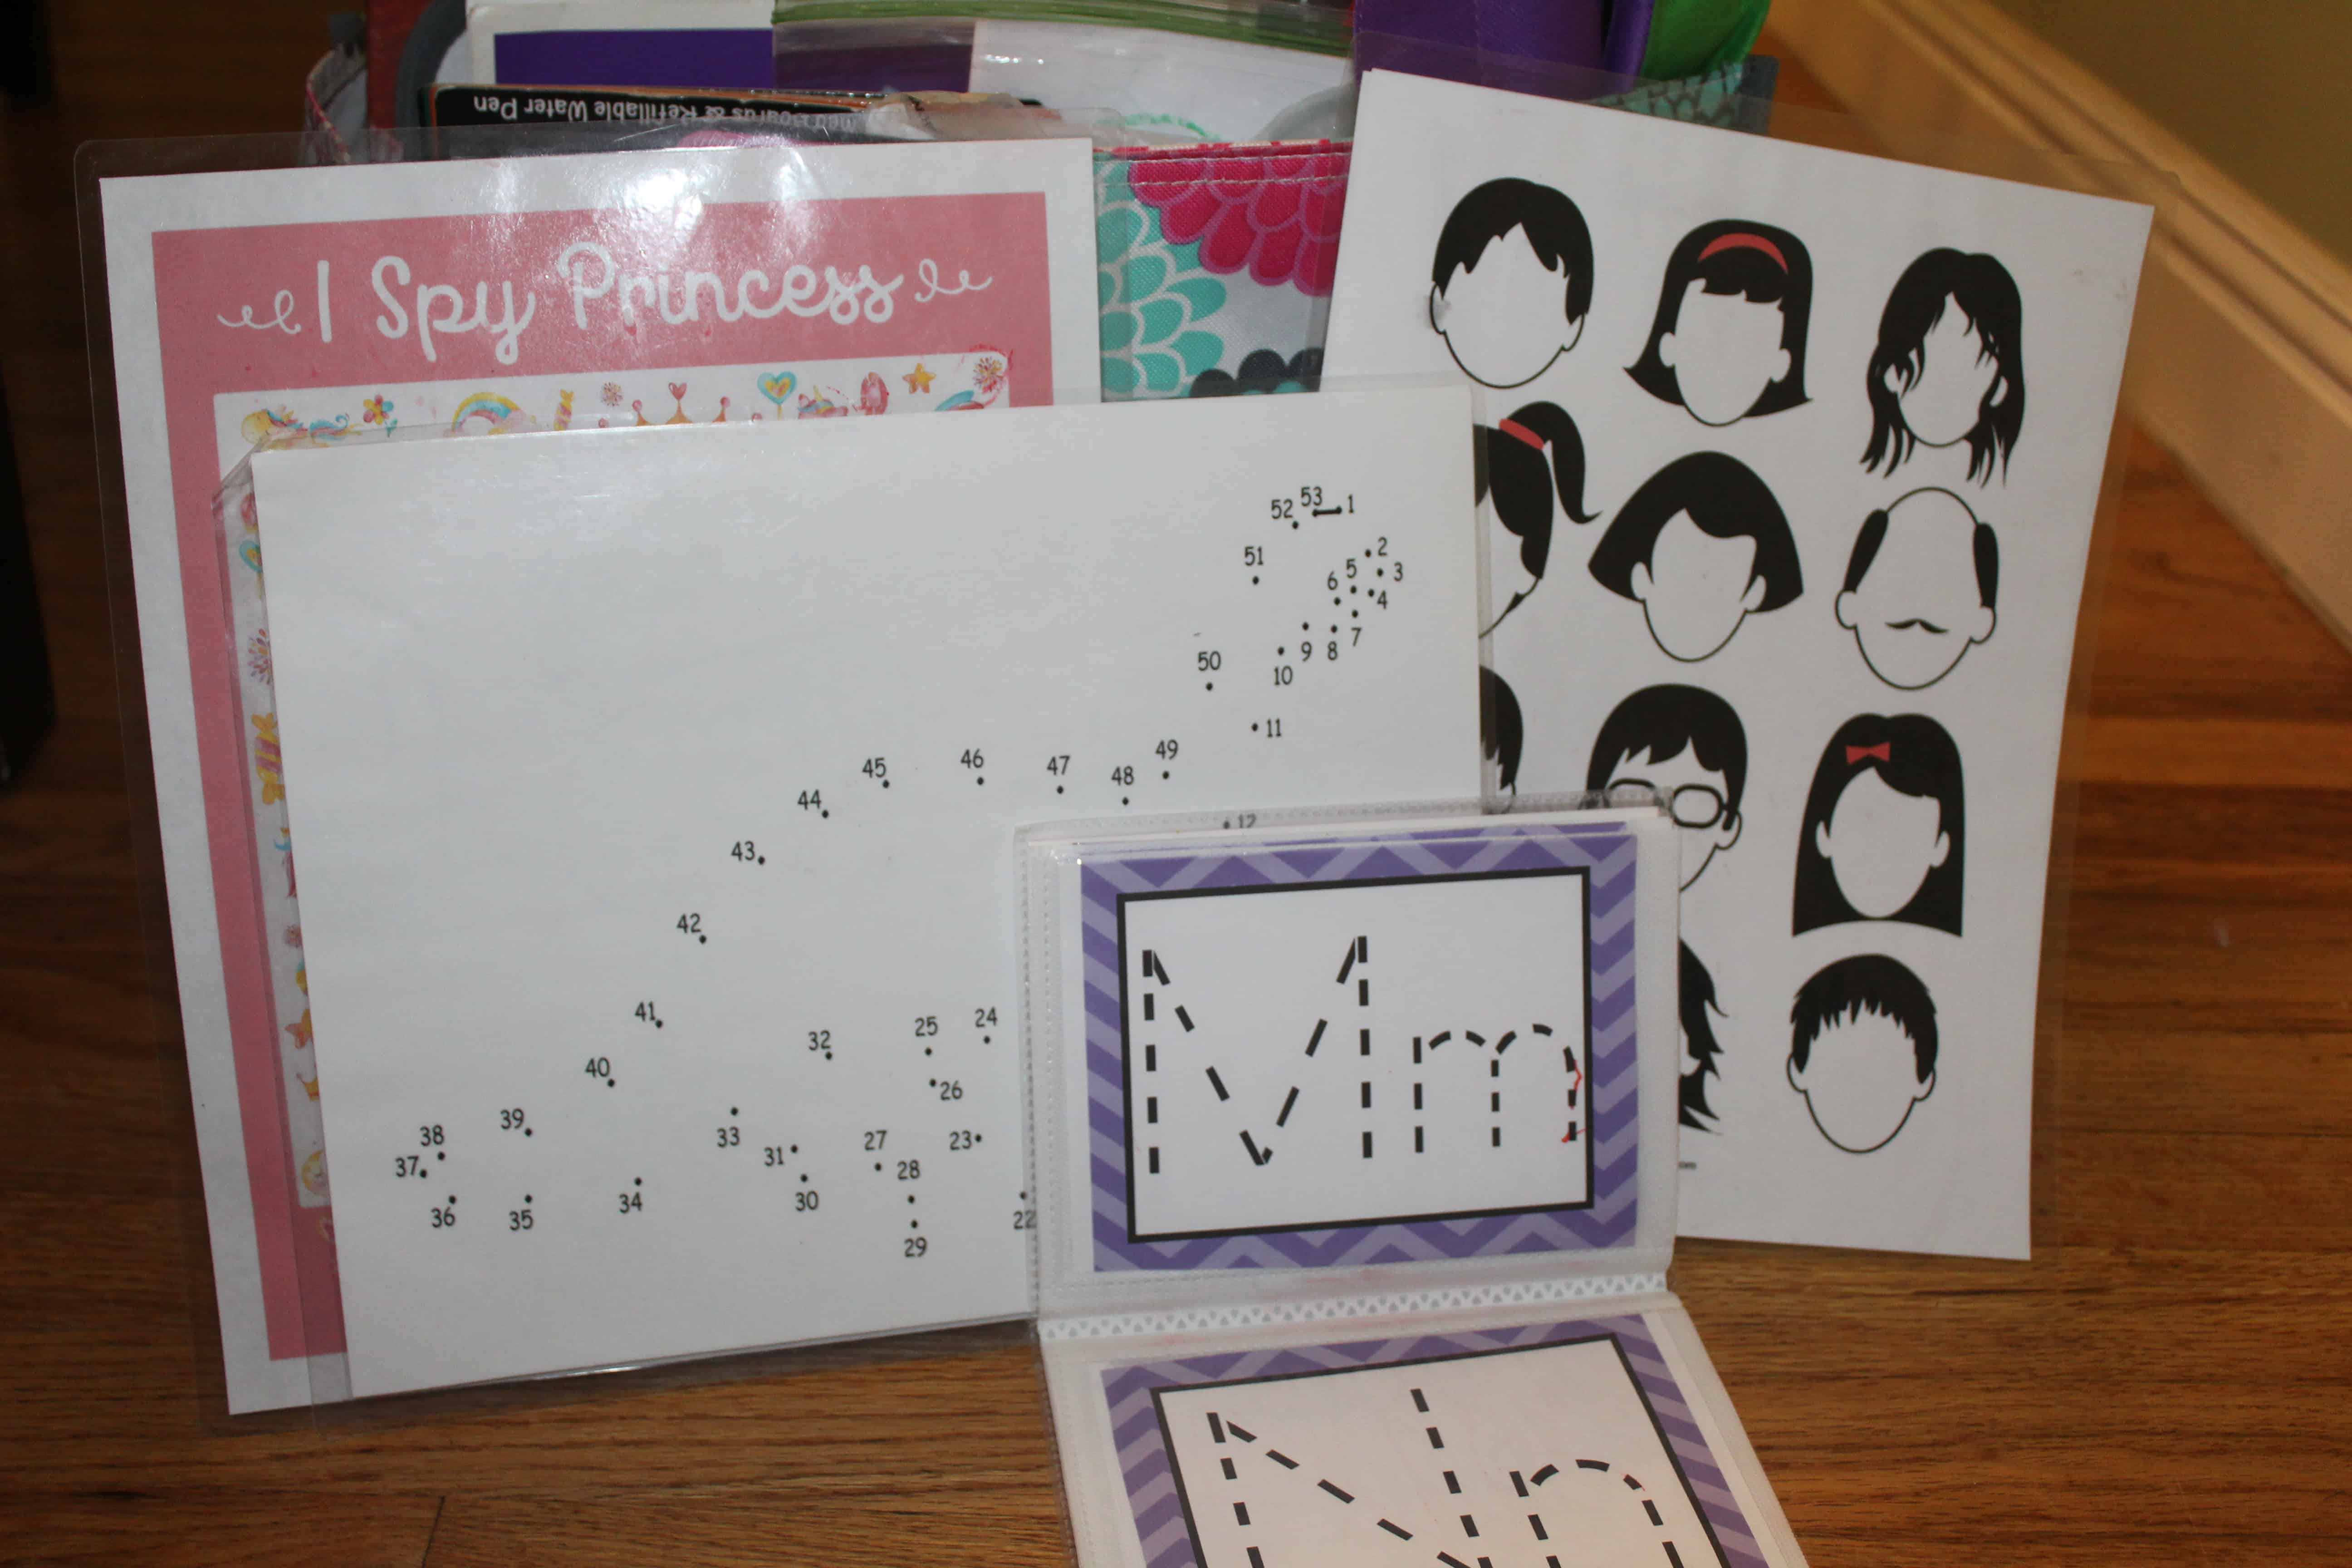 Papers with drawings and activities on them.